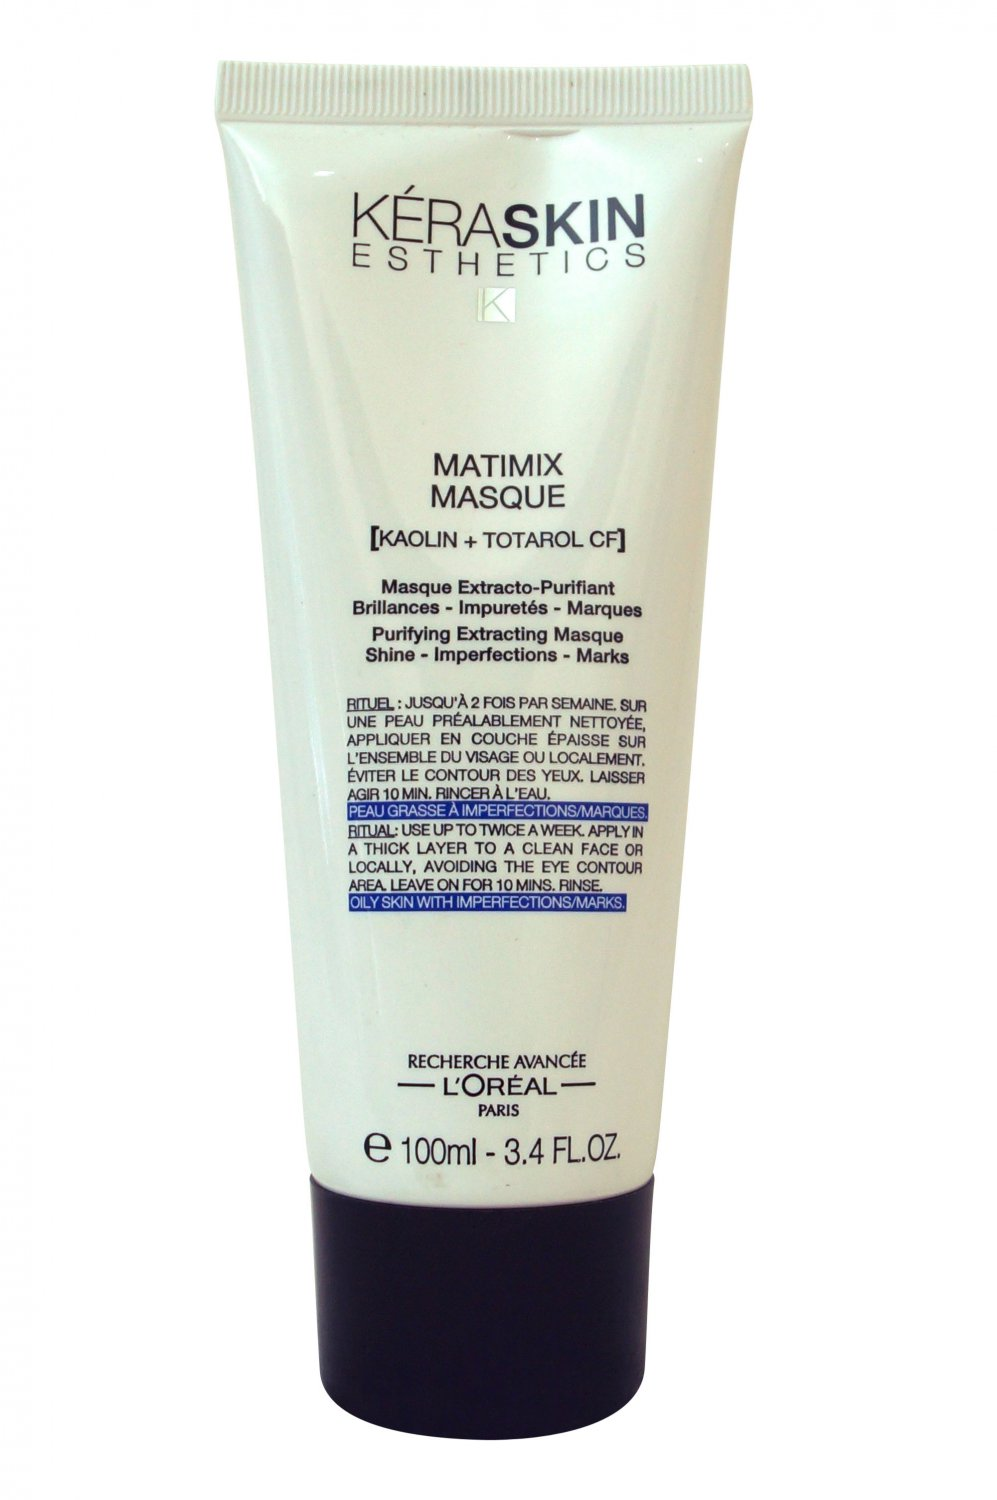 Keraskin Esthetics Matimax Masque Purifying Extracting Masque 100 ml 3.4 oz